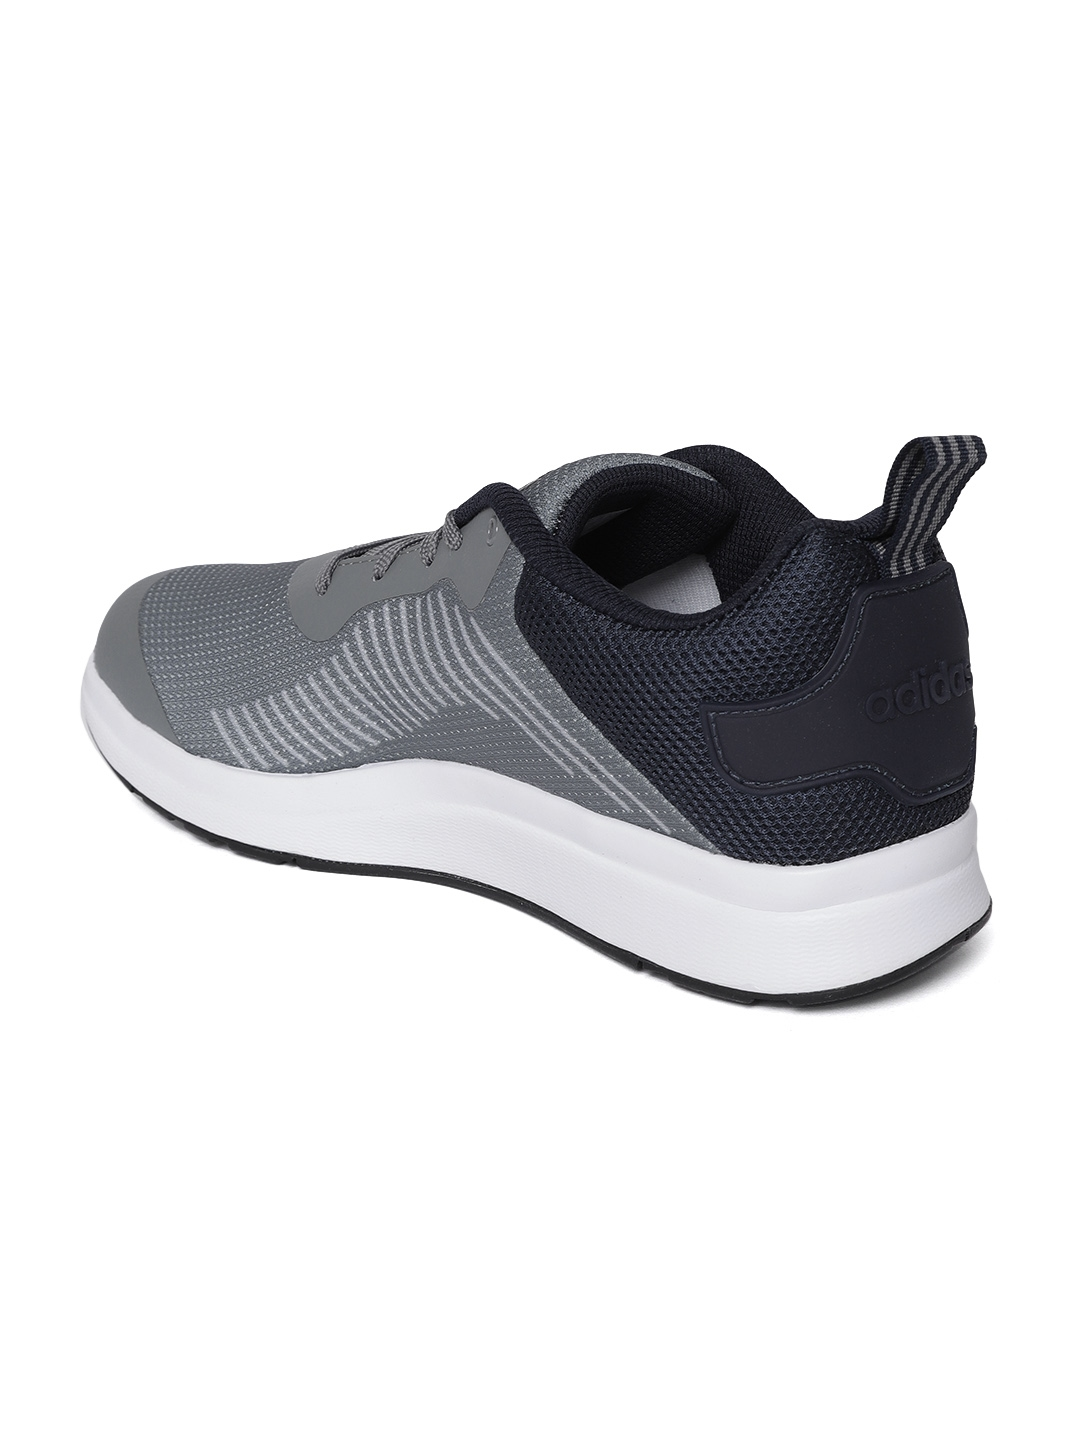 6f4528f497 Buy ADIDAS Men Grey PUARO Running Shoes - Sports Shoes for Men ...